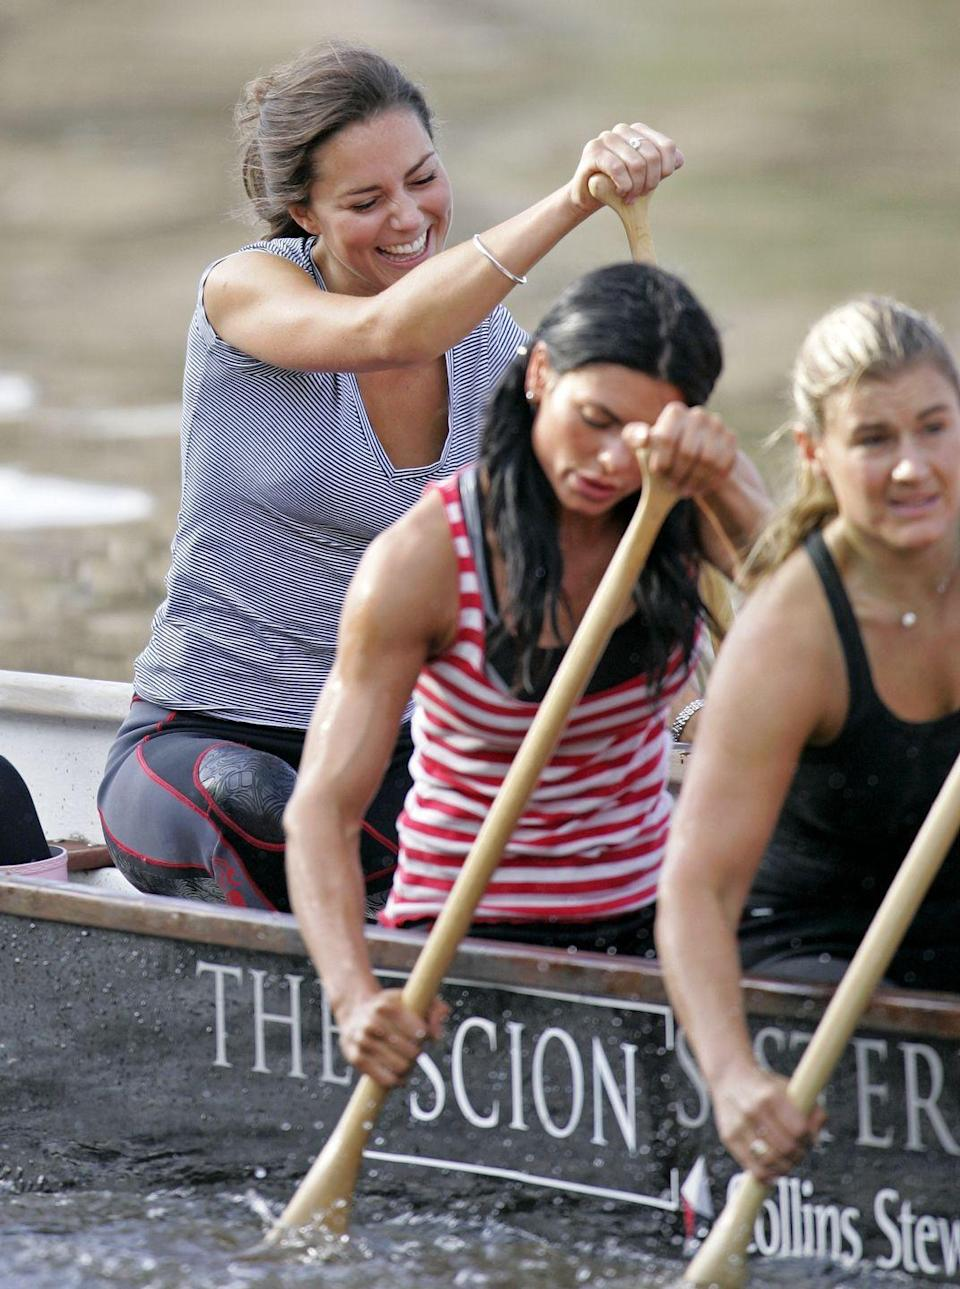 "<p>Kate trained with the Sisterhood Cross Channel rowing team on the River Thames. This wasn't the first time she got <a href=""https://www.townandcountrymag.com/society/tradition/a28646454/kate-middleton-kings-cup-disqualification-prince-william-wins/"" rel=""nofollow noopener"" target=""_blank"" data-ylk=""slk:competitive over a boat race"" class=""link rapid-noclick-resp"">competitive over a boat race</a>.</p>"